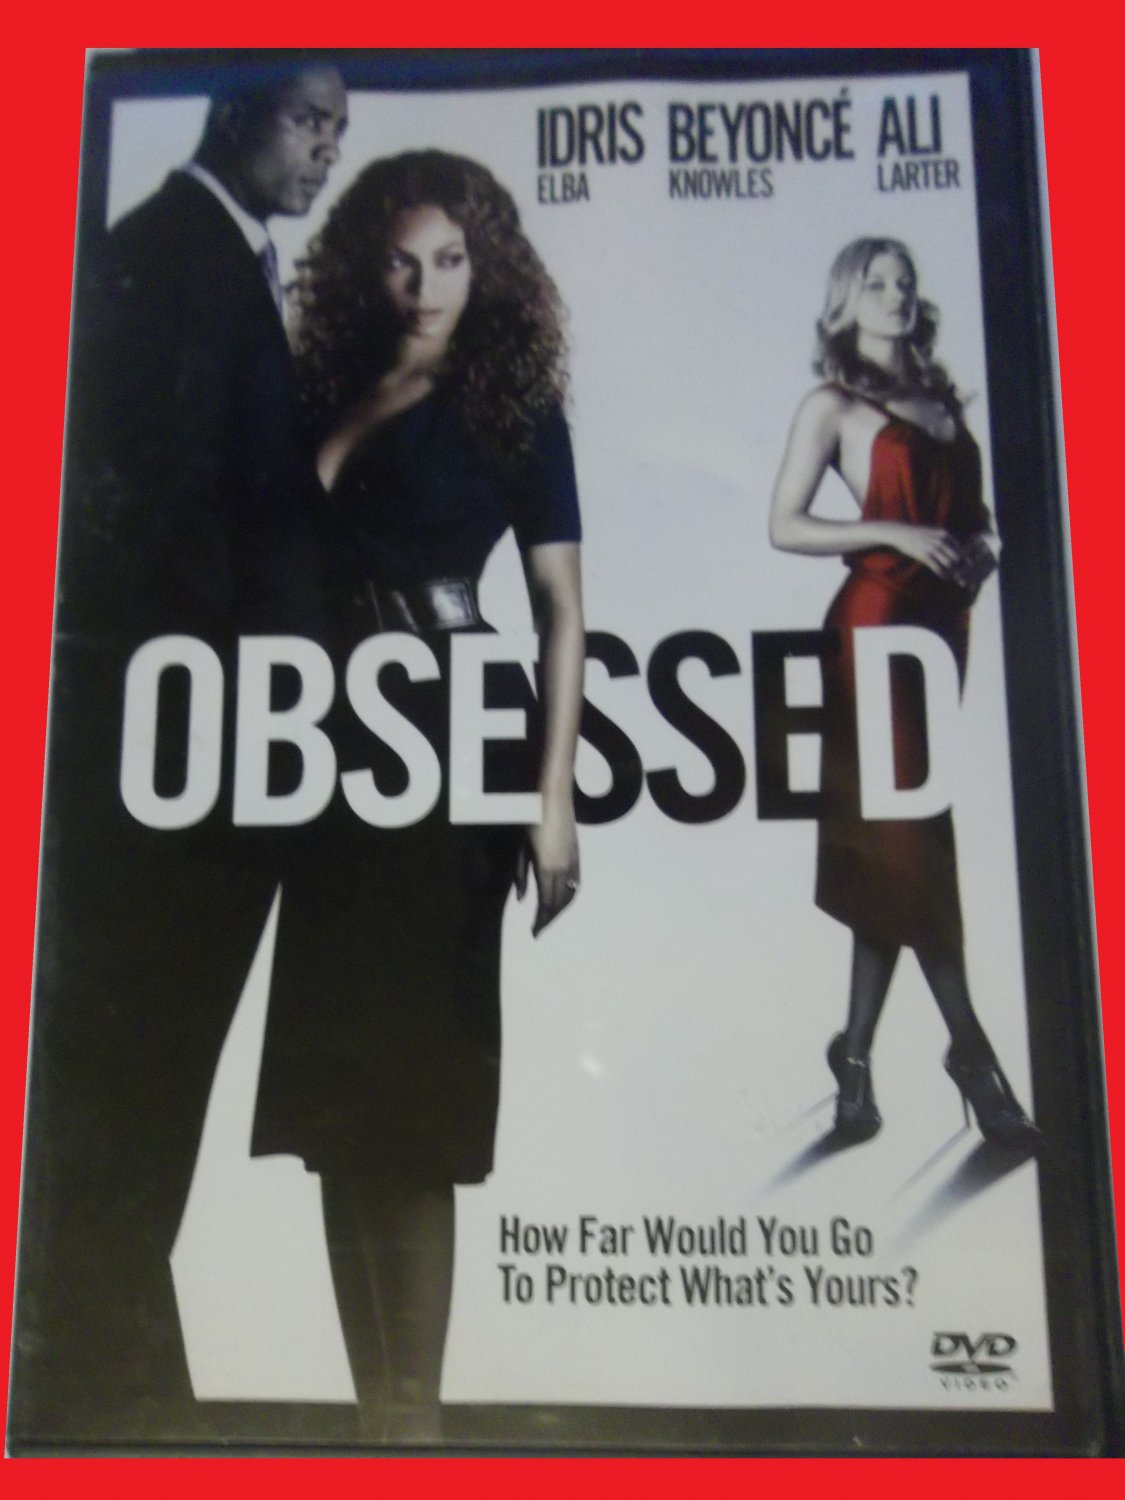 OBSESSED (FREE DVD, FAST SHIPPING!) BEYONCE KNOWLES (ROMANTIC DRAMA/THRILLER), PLUS FREE GIFT